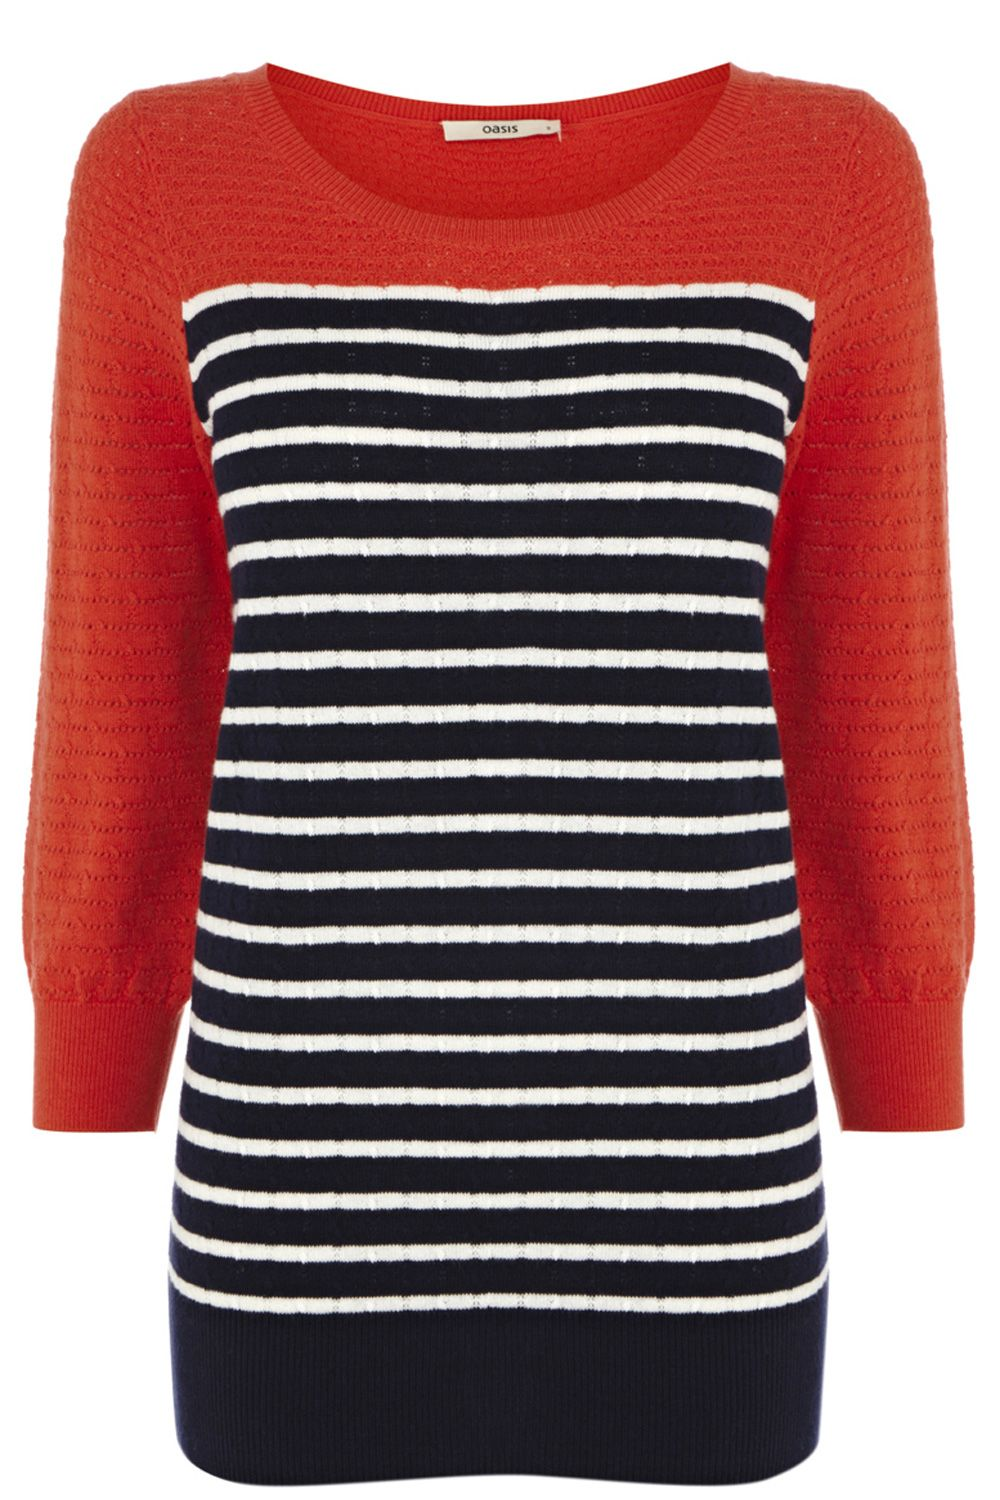 Colour block breton top